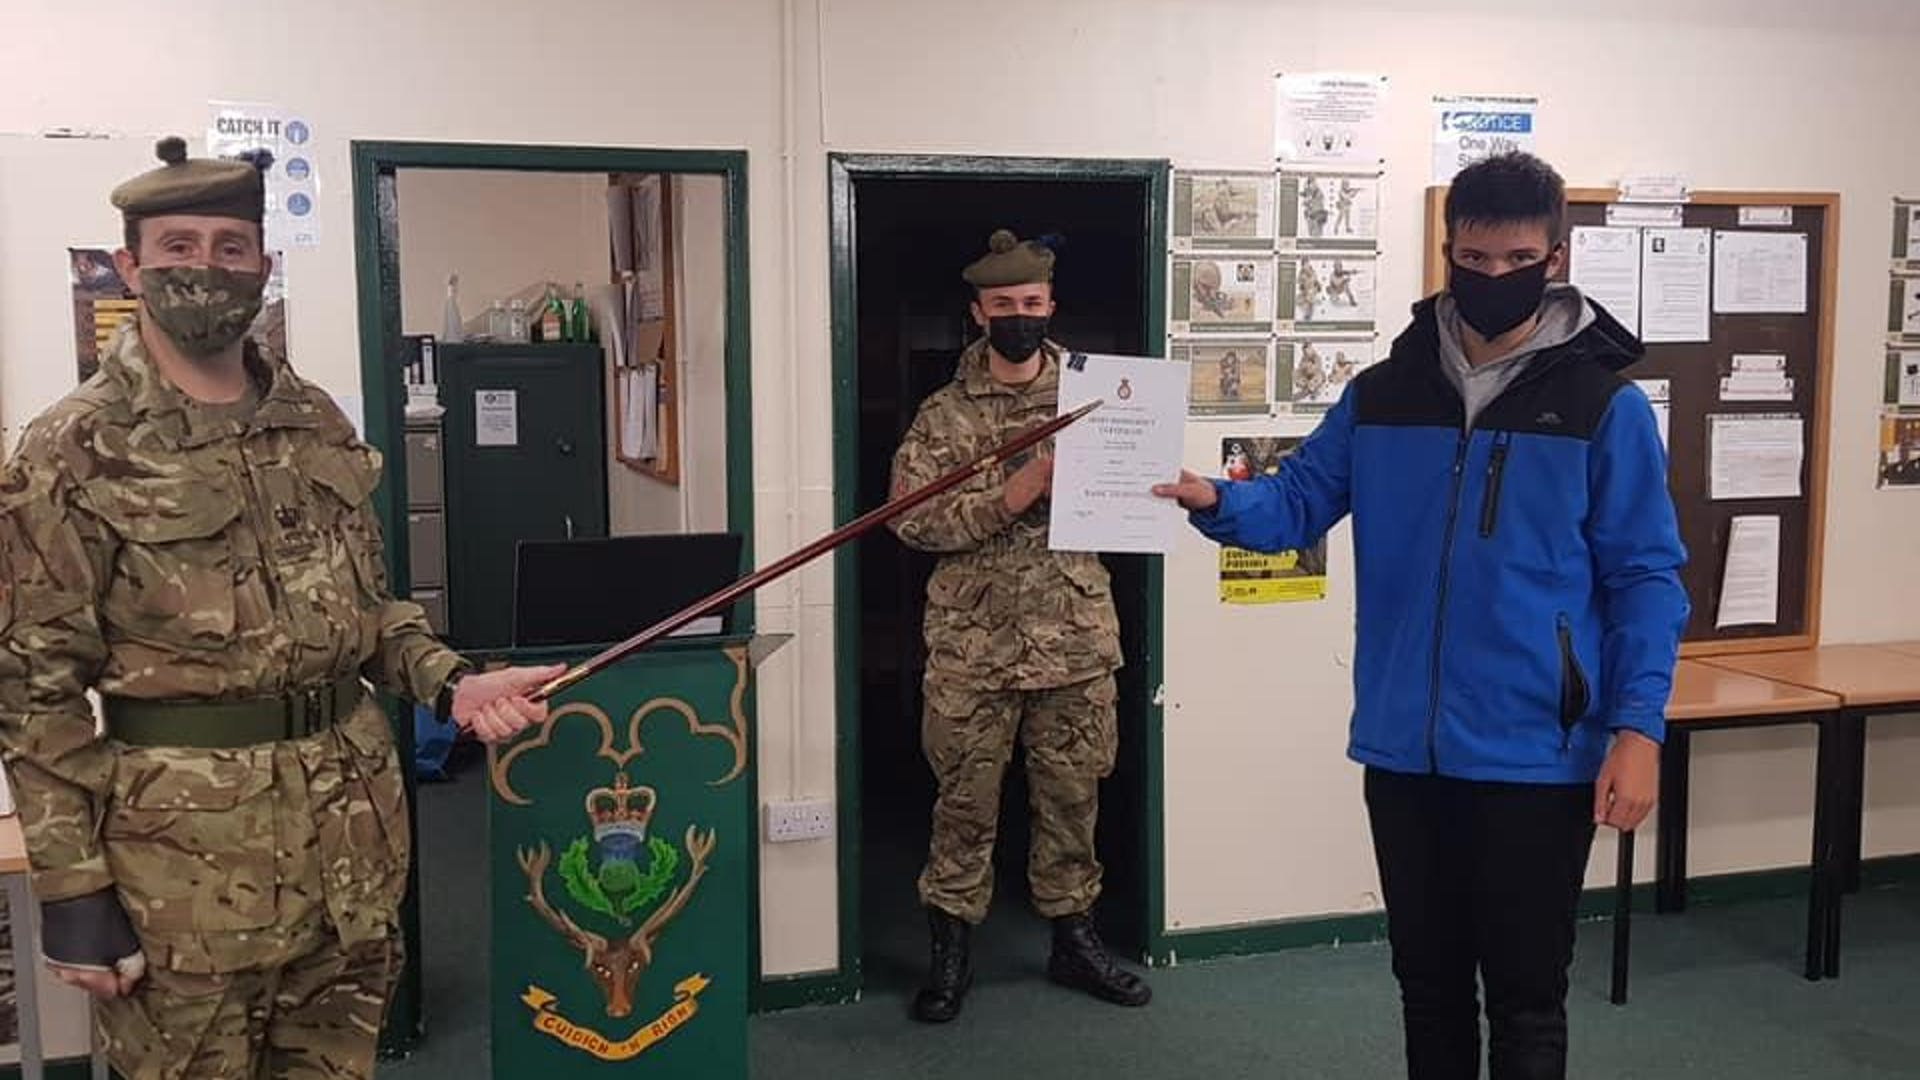 Cdt Liam Squire who was presented his Basic Certificate by Detachment Commander CSMI Mac Iver